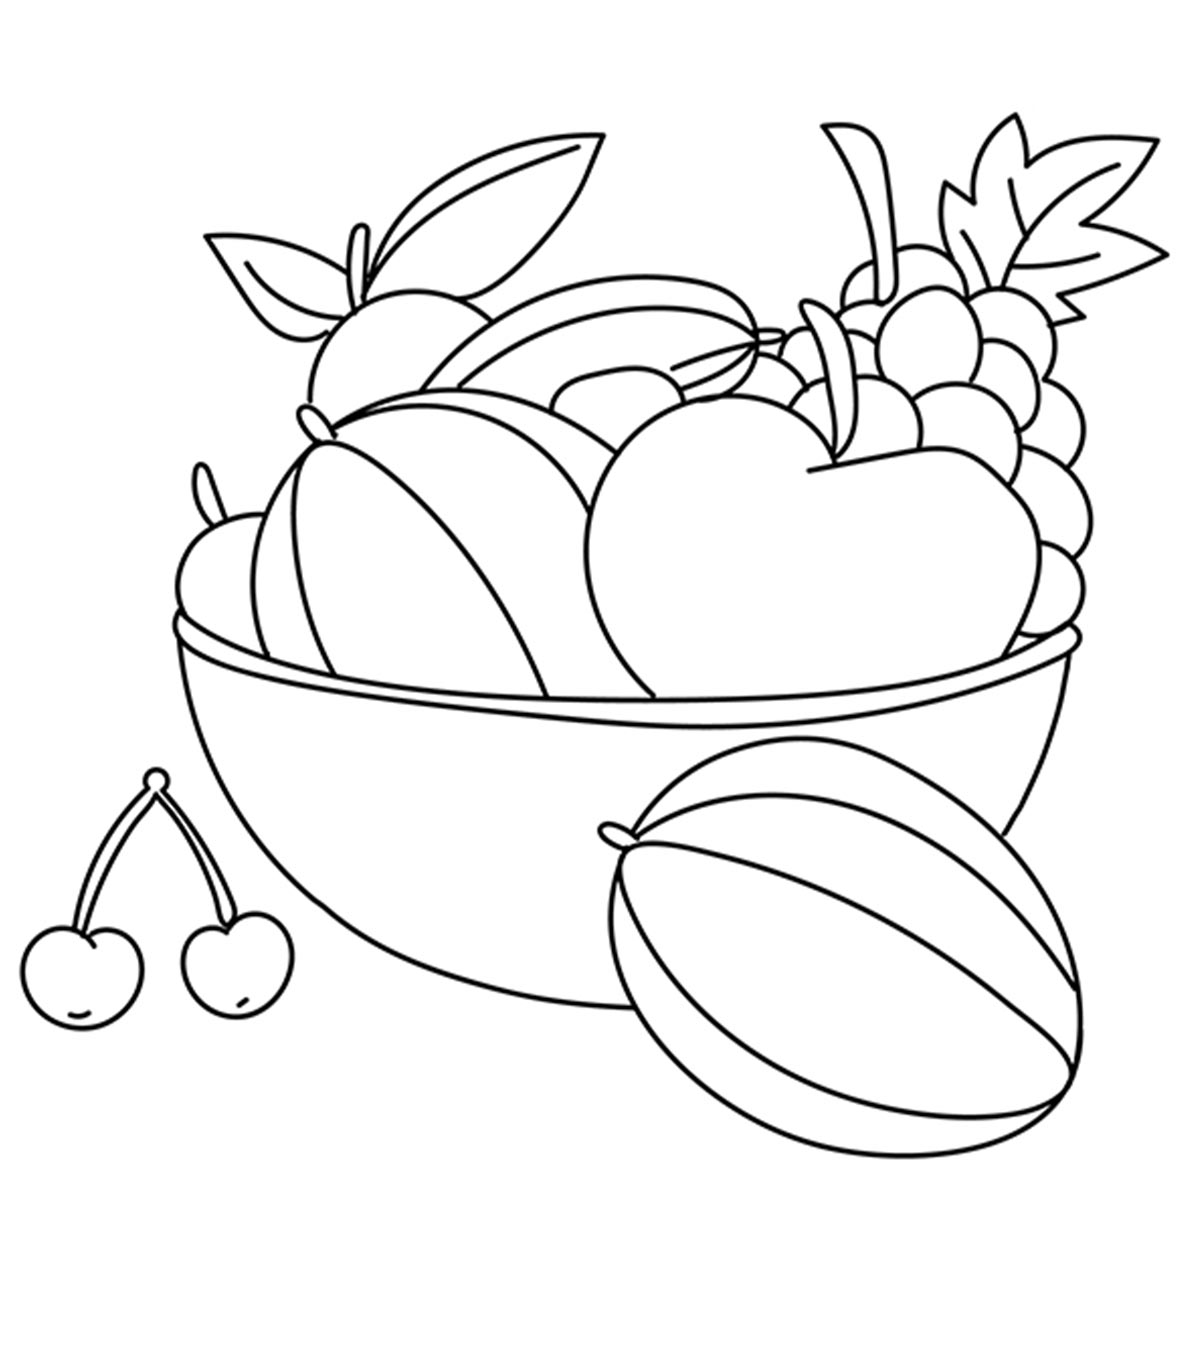 coloring vegetables and fruits fruit coloring pages at getdrawings free download fruits vegetables and coloring